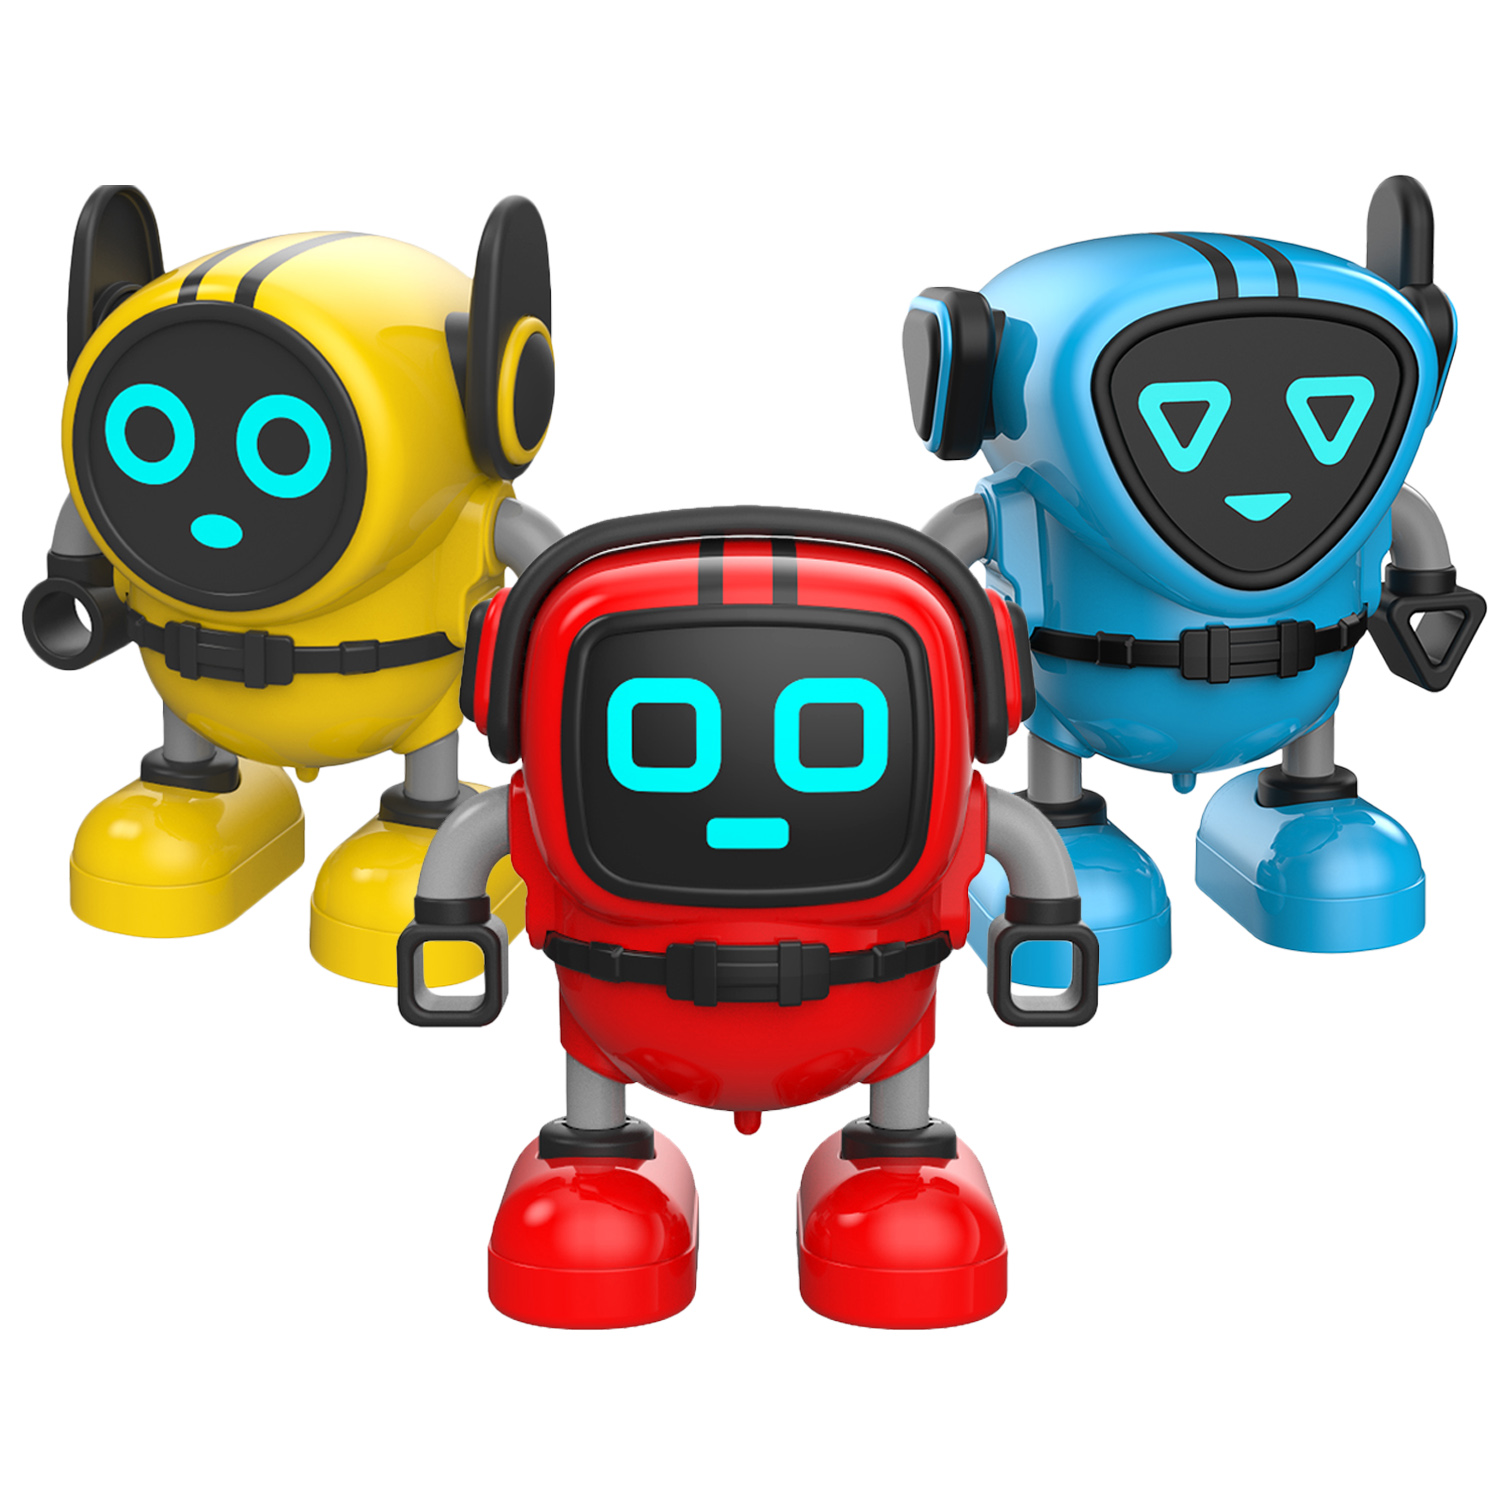 Mini Infrared RC Remote Control Robot Toy with Storage Can for Kids Children Birthday Christmas New Year Festival Gift Blue